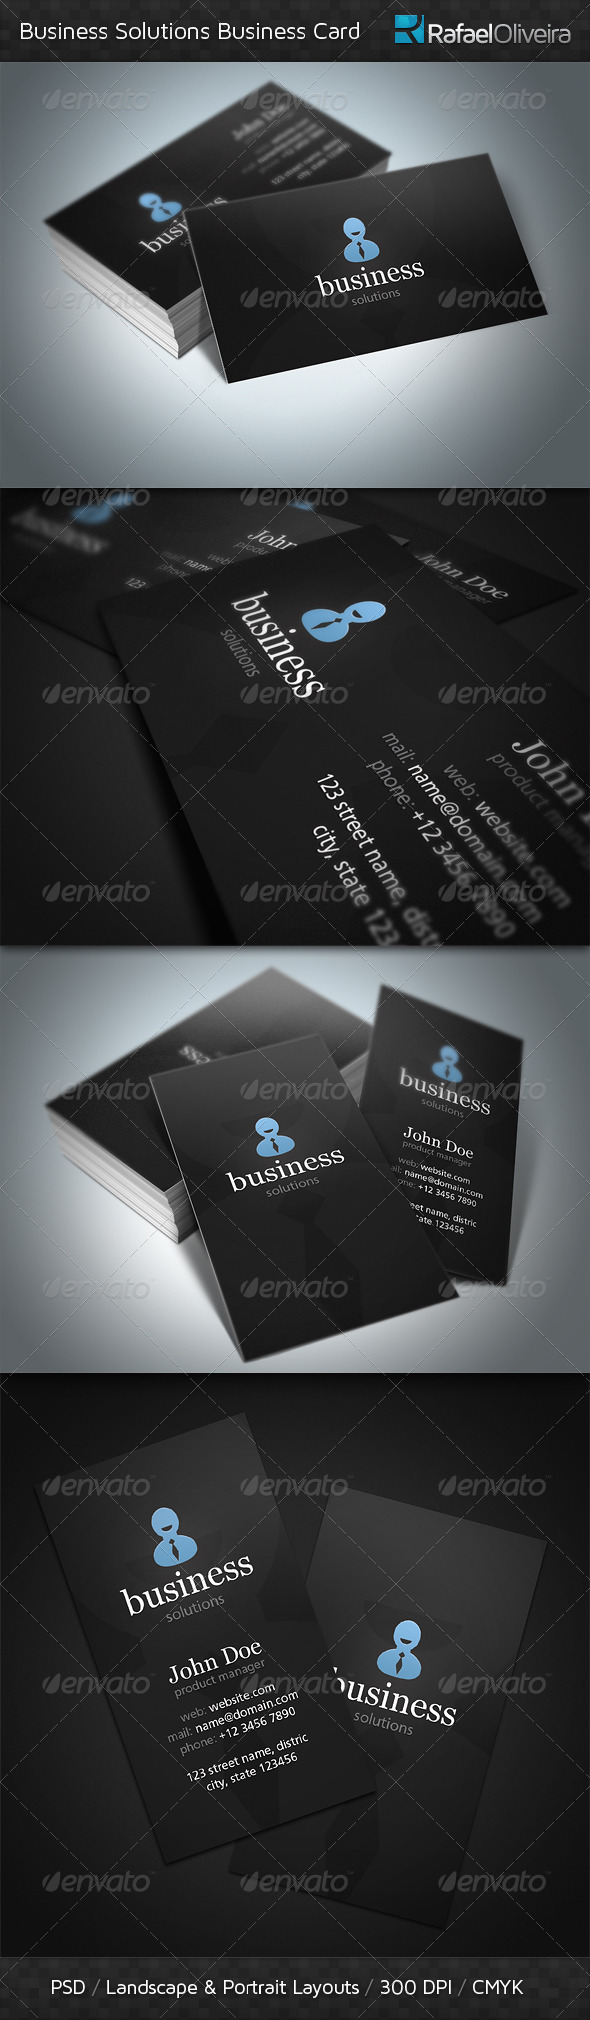 Business Solutions Business Cards - Corporate Business Cards